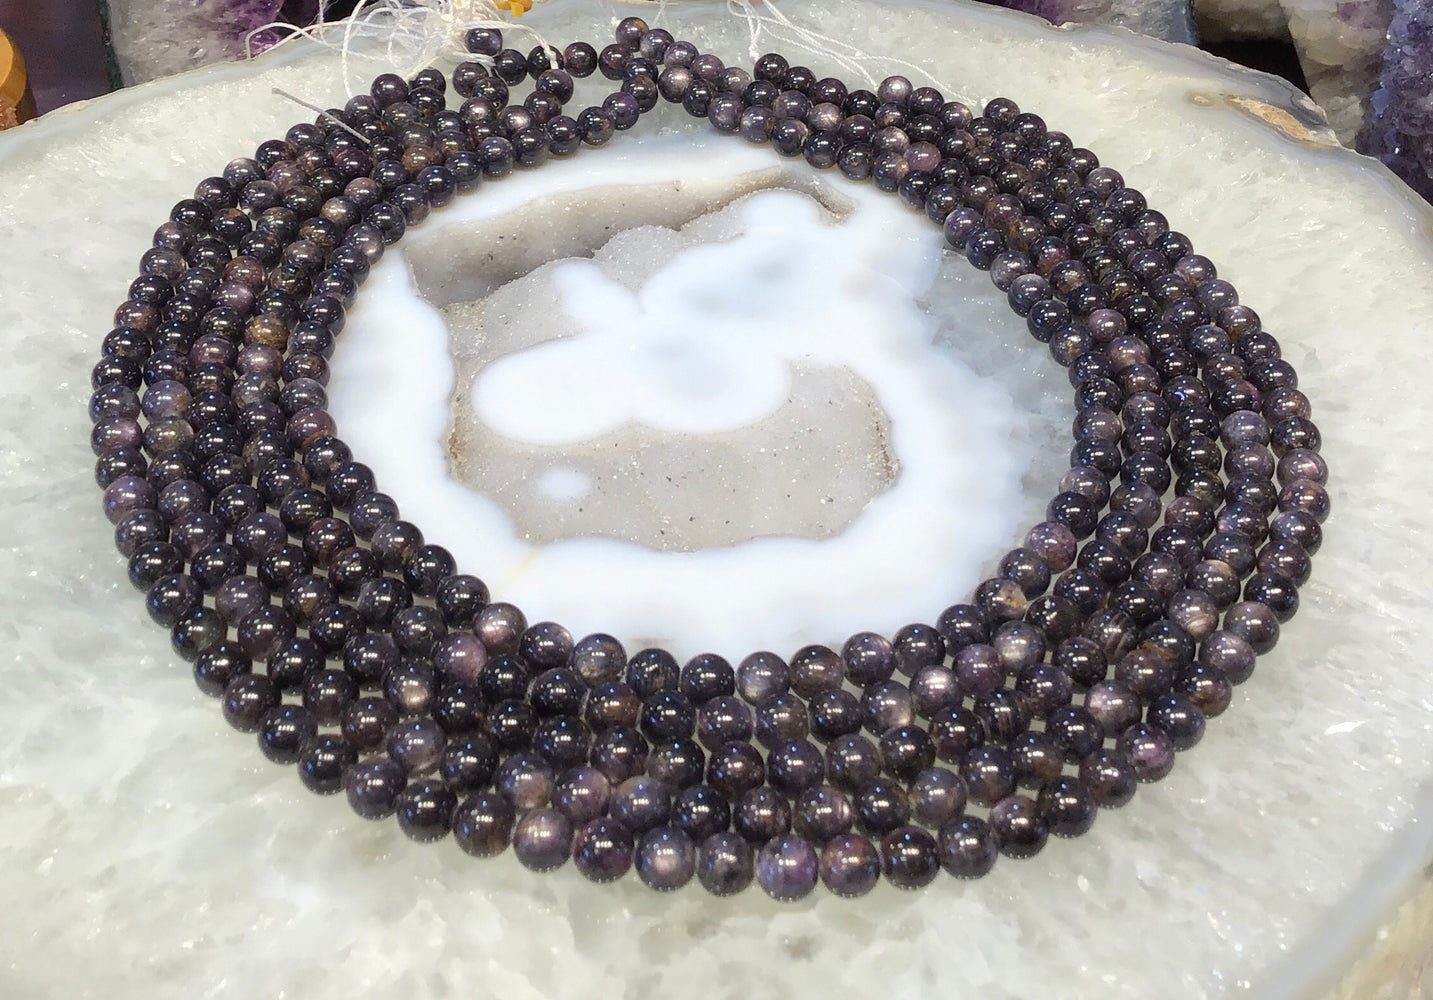 6mm Natural Star Sapphire Round Gemstone Beads